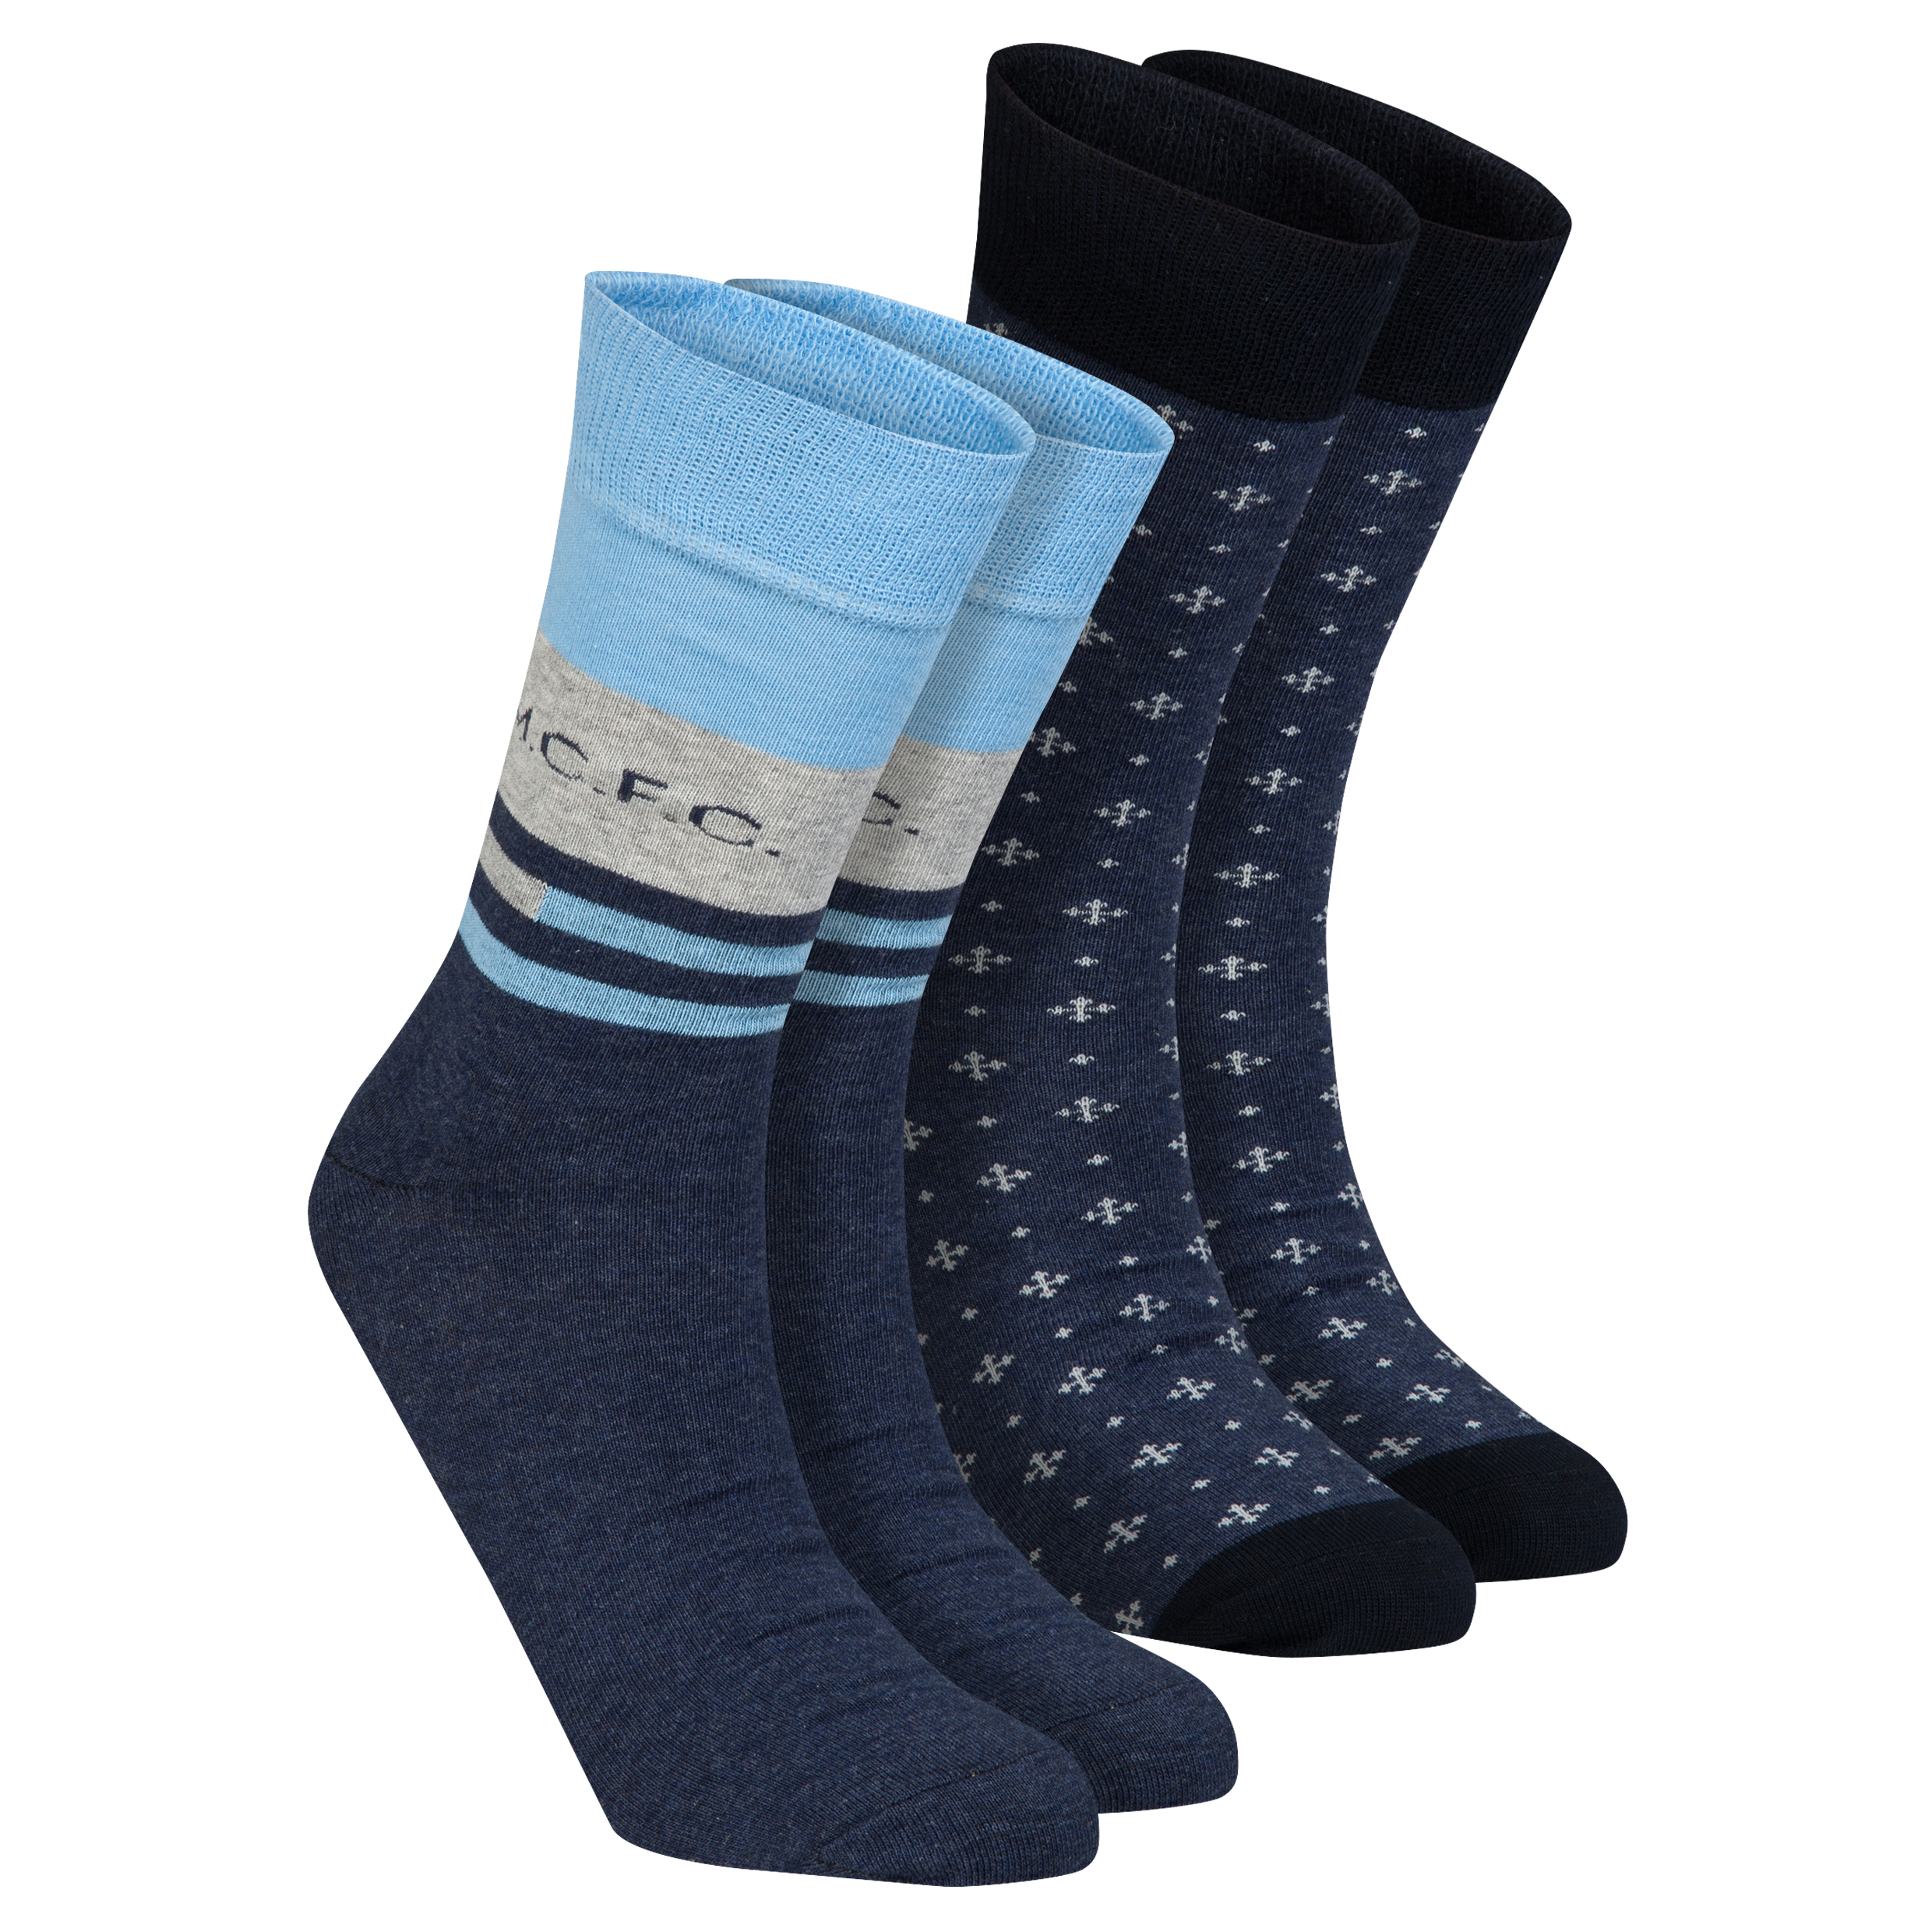 Manchester City 2PK Dress Socks - Grey/Navy - Mens